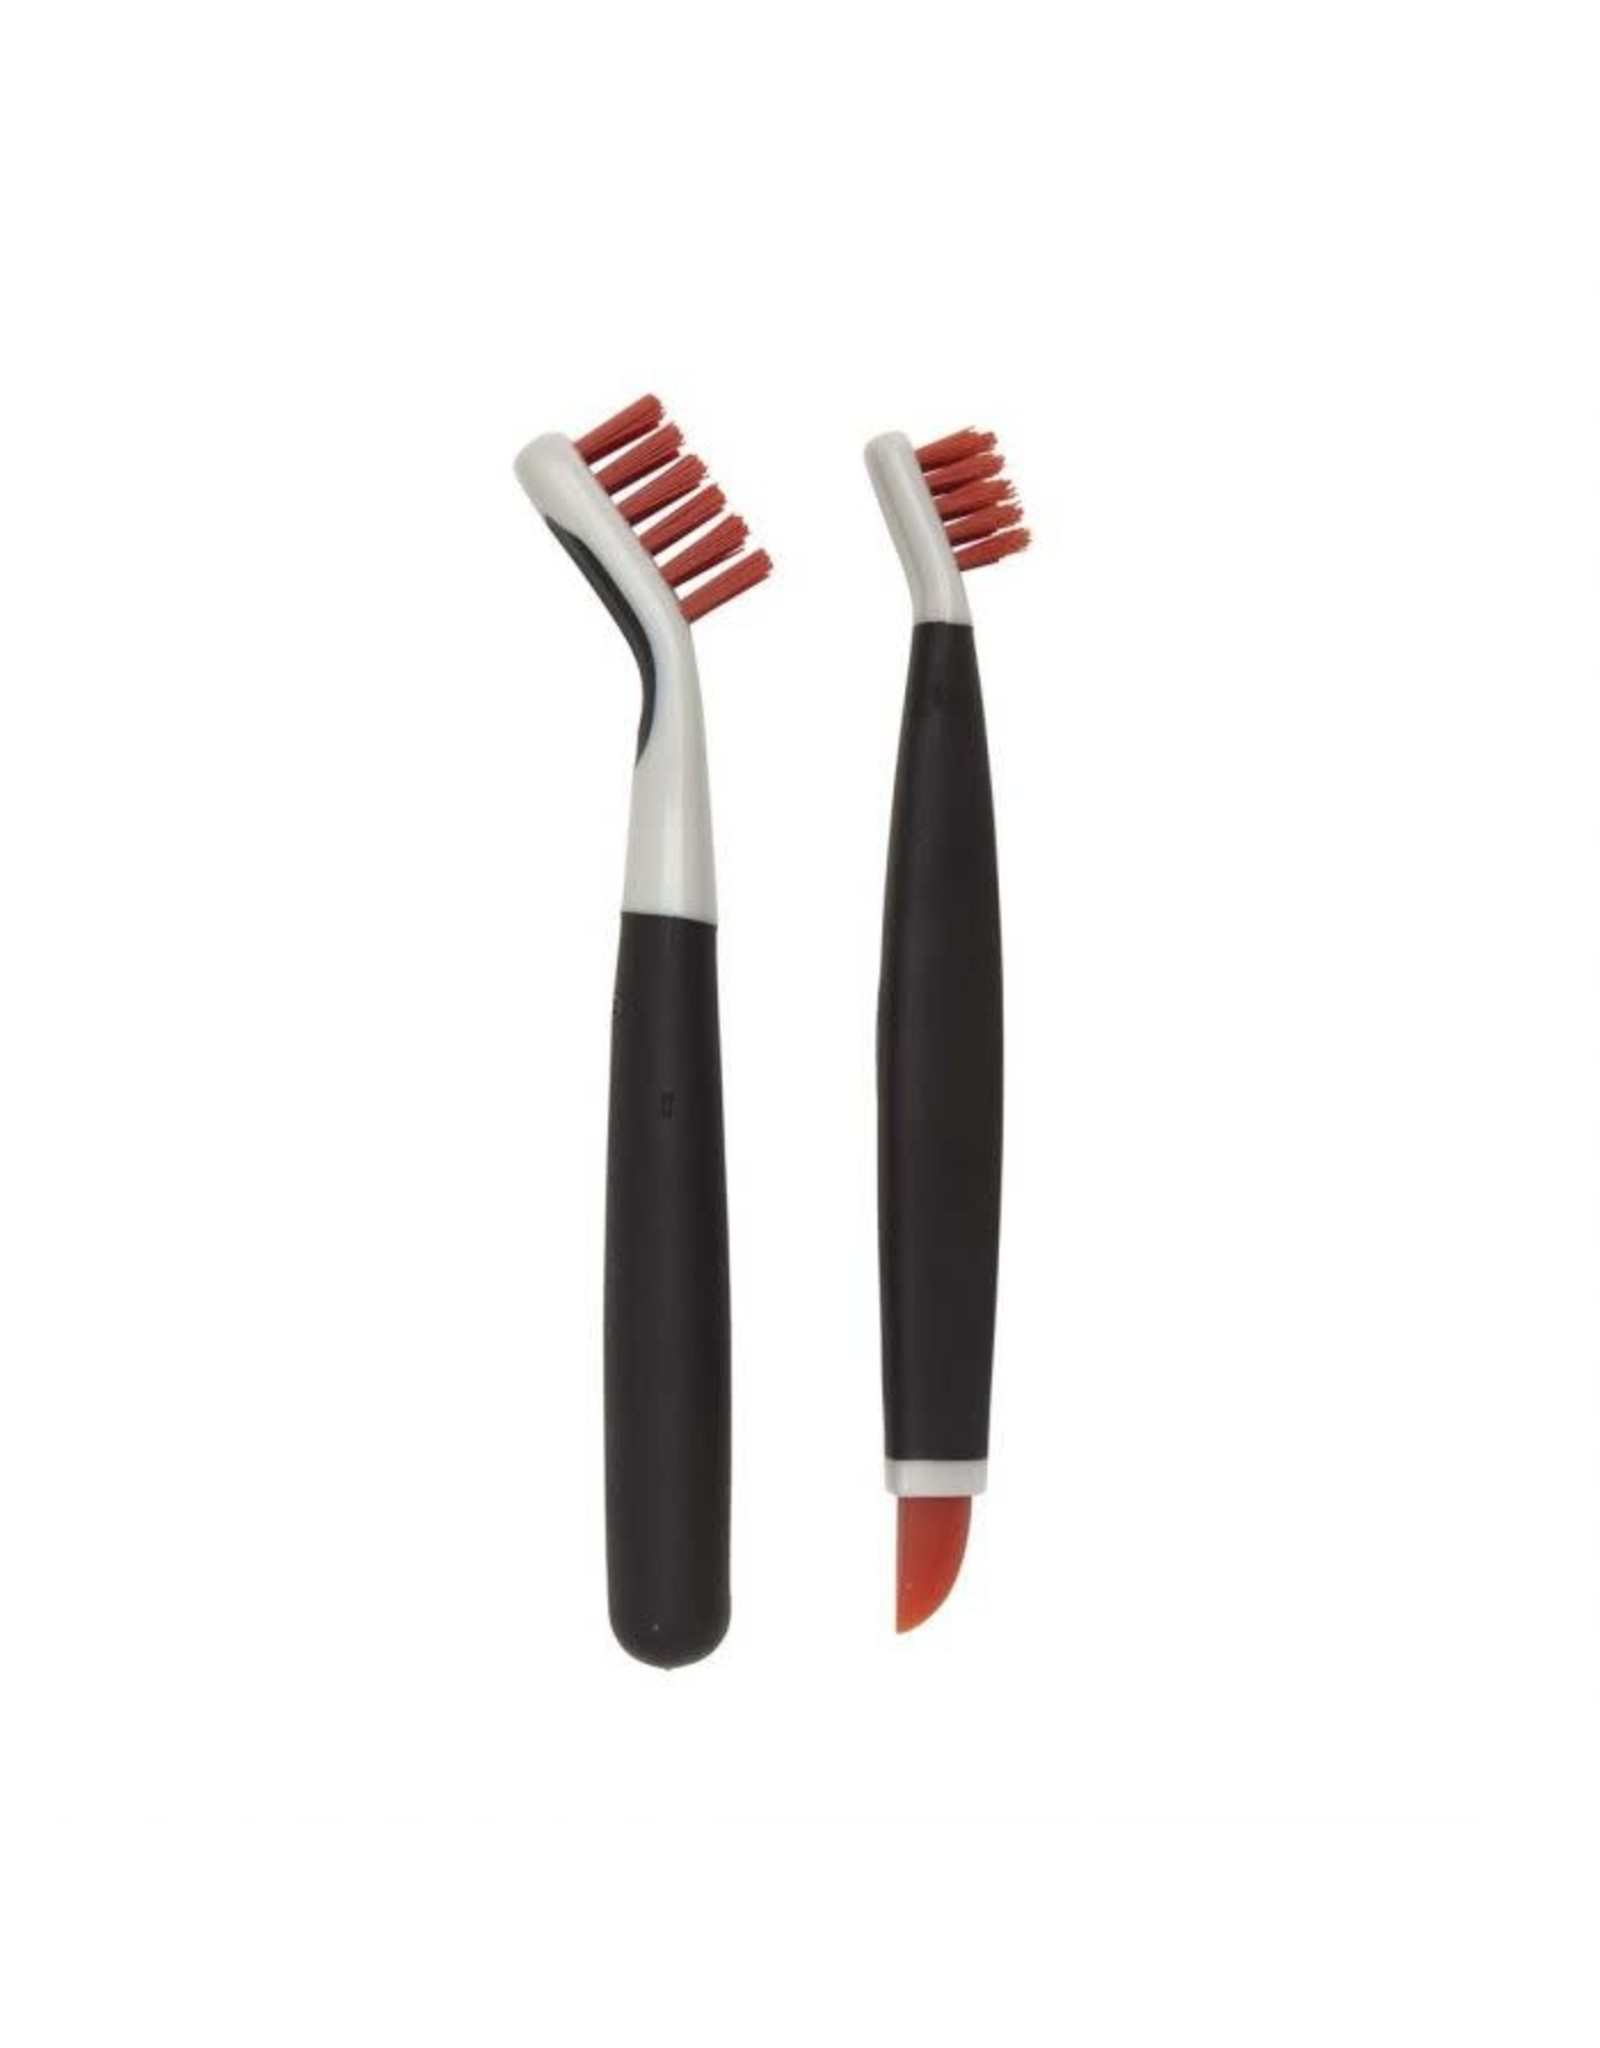 Oxo Deep Clean Brush Set, Blk/Orange, S/2